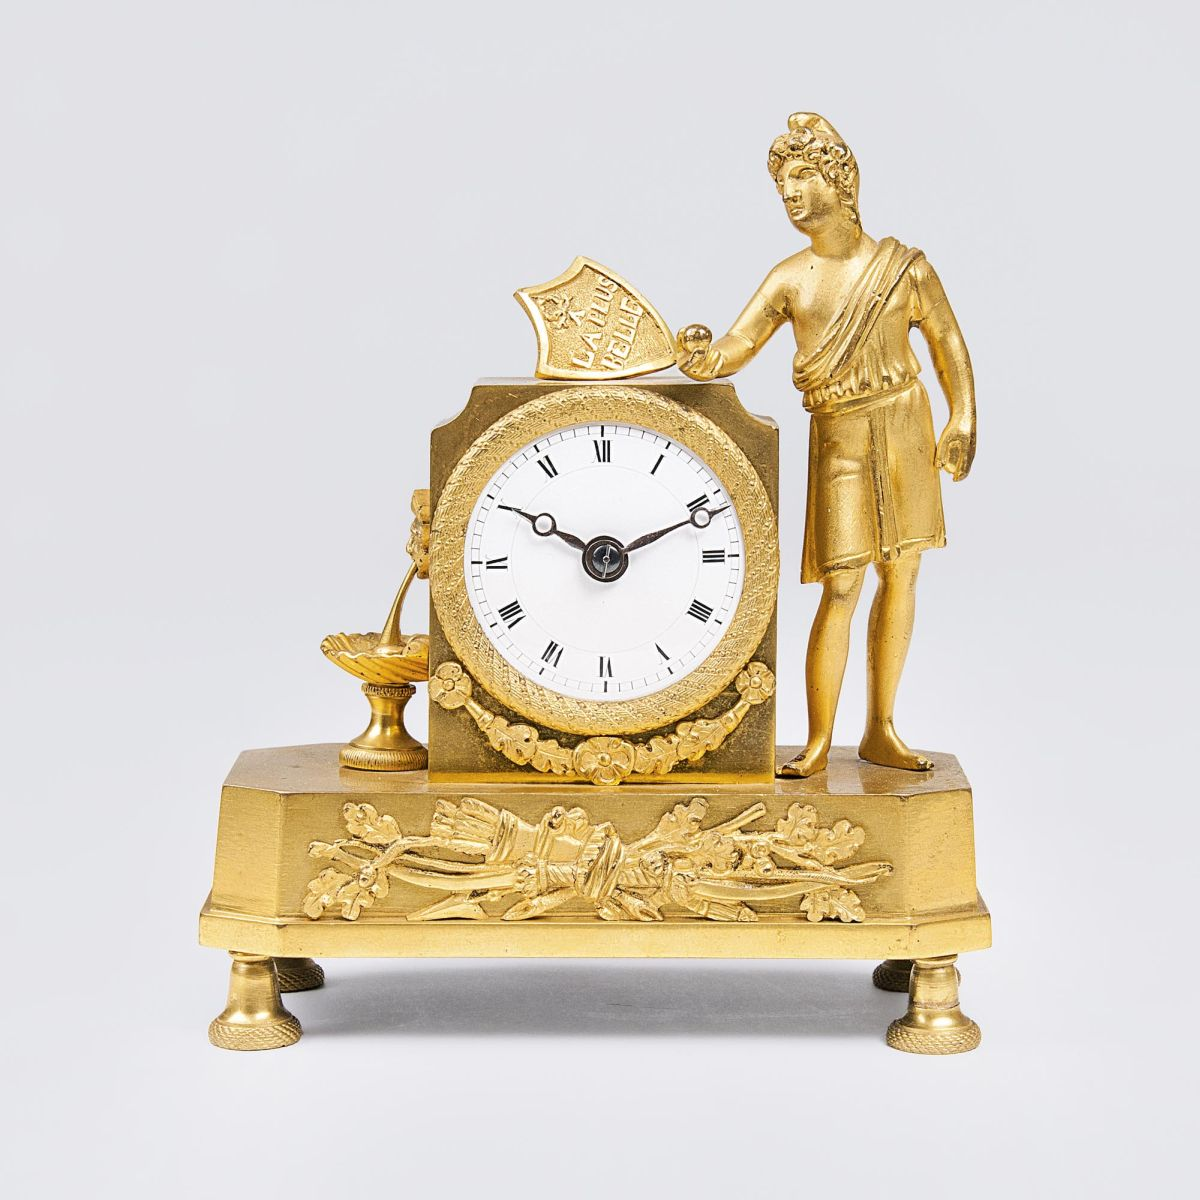 A small Empire Pendule 'Judgement of Paris - La plus Belle'